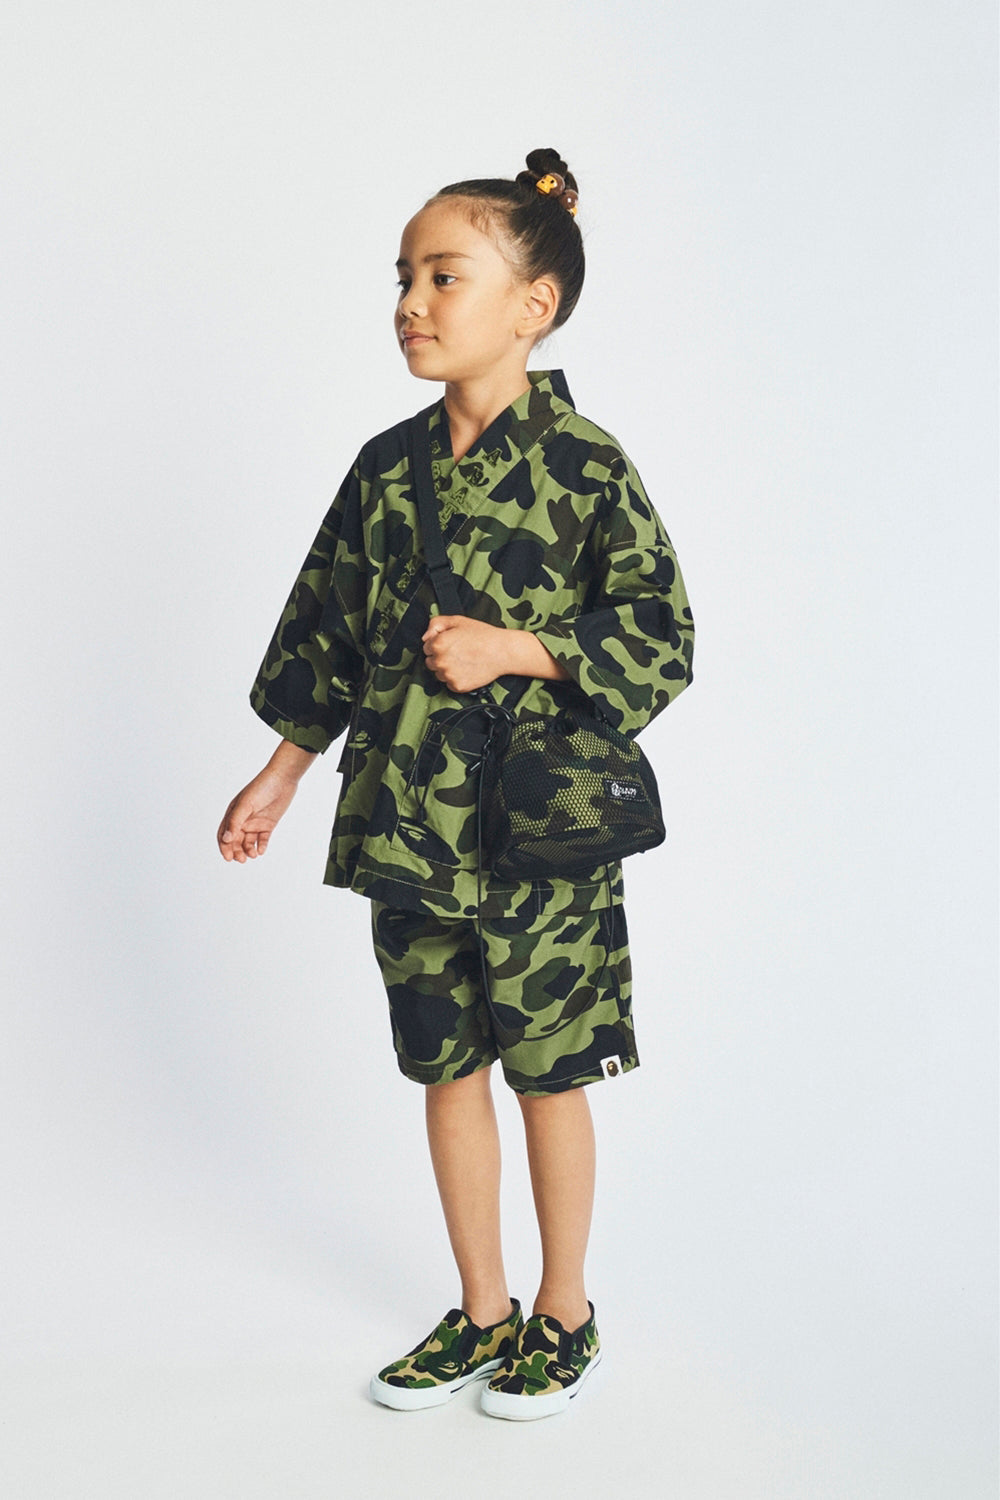 A BATHING APE 2019 AW KIDS' LOOKBOOK 10